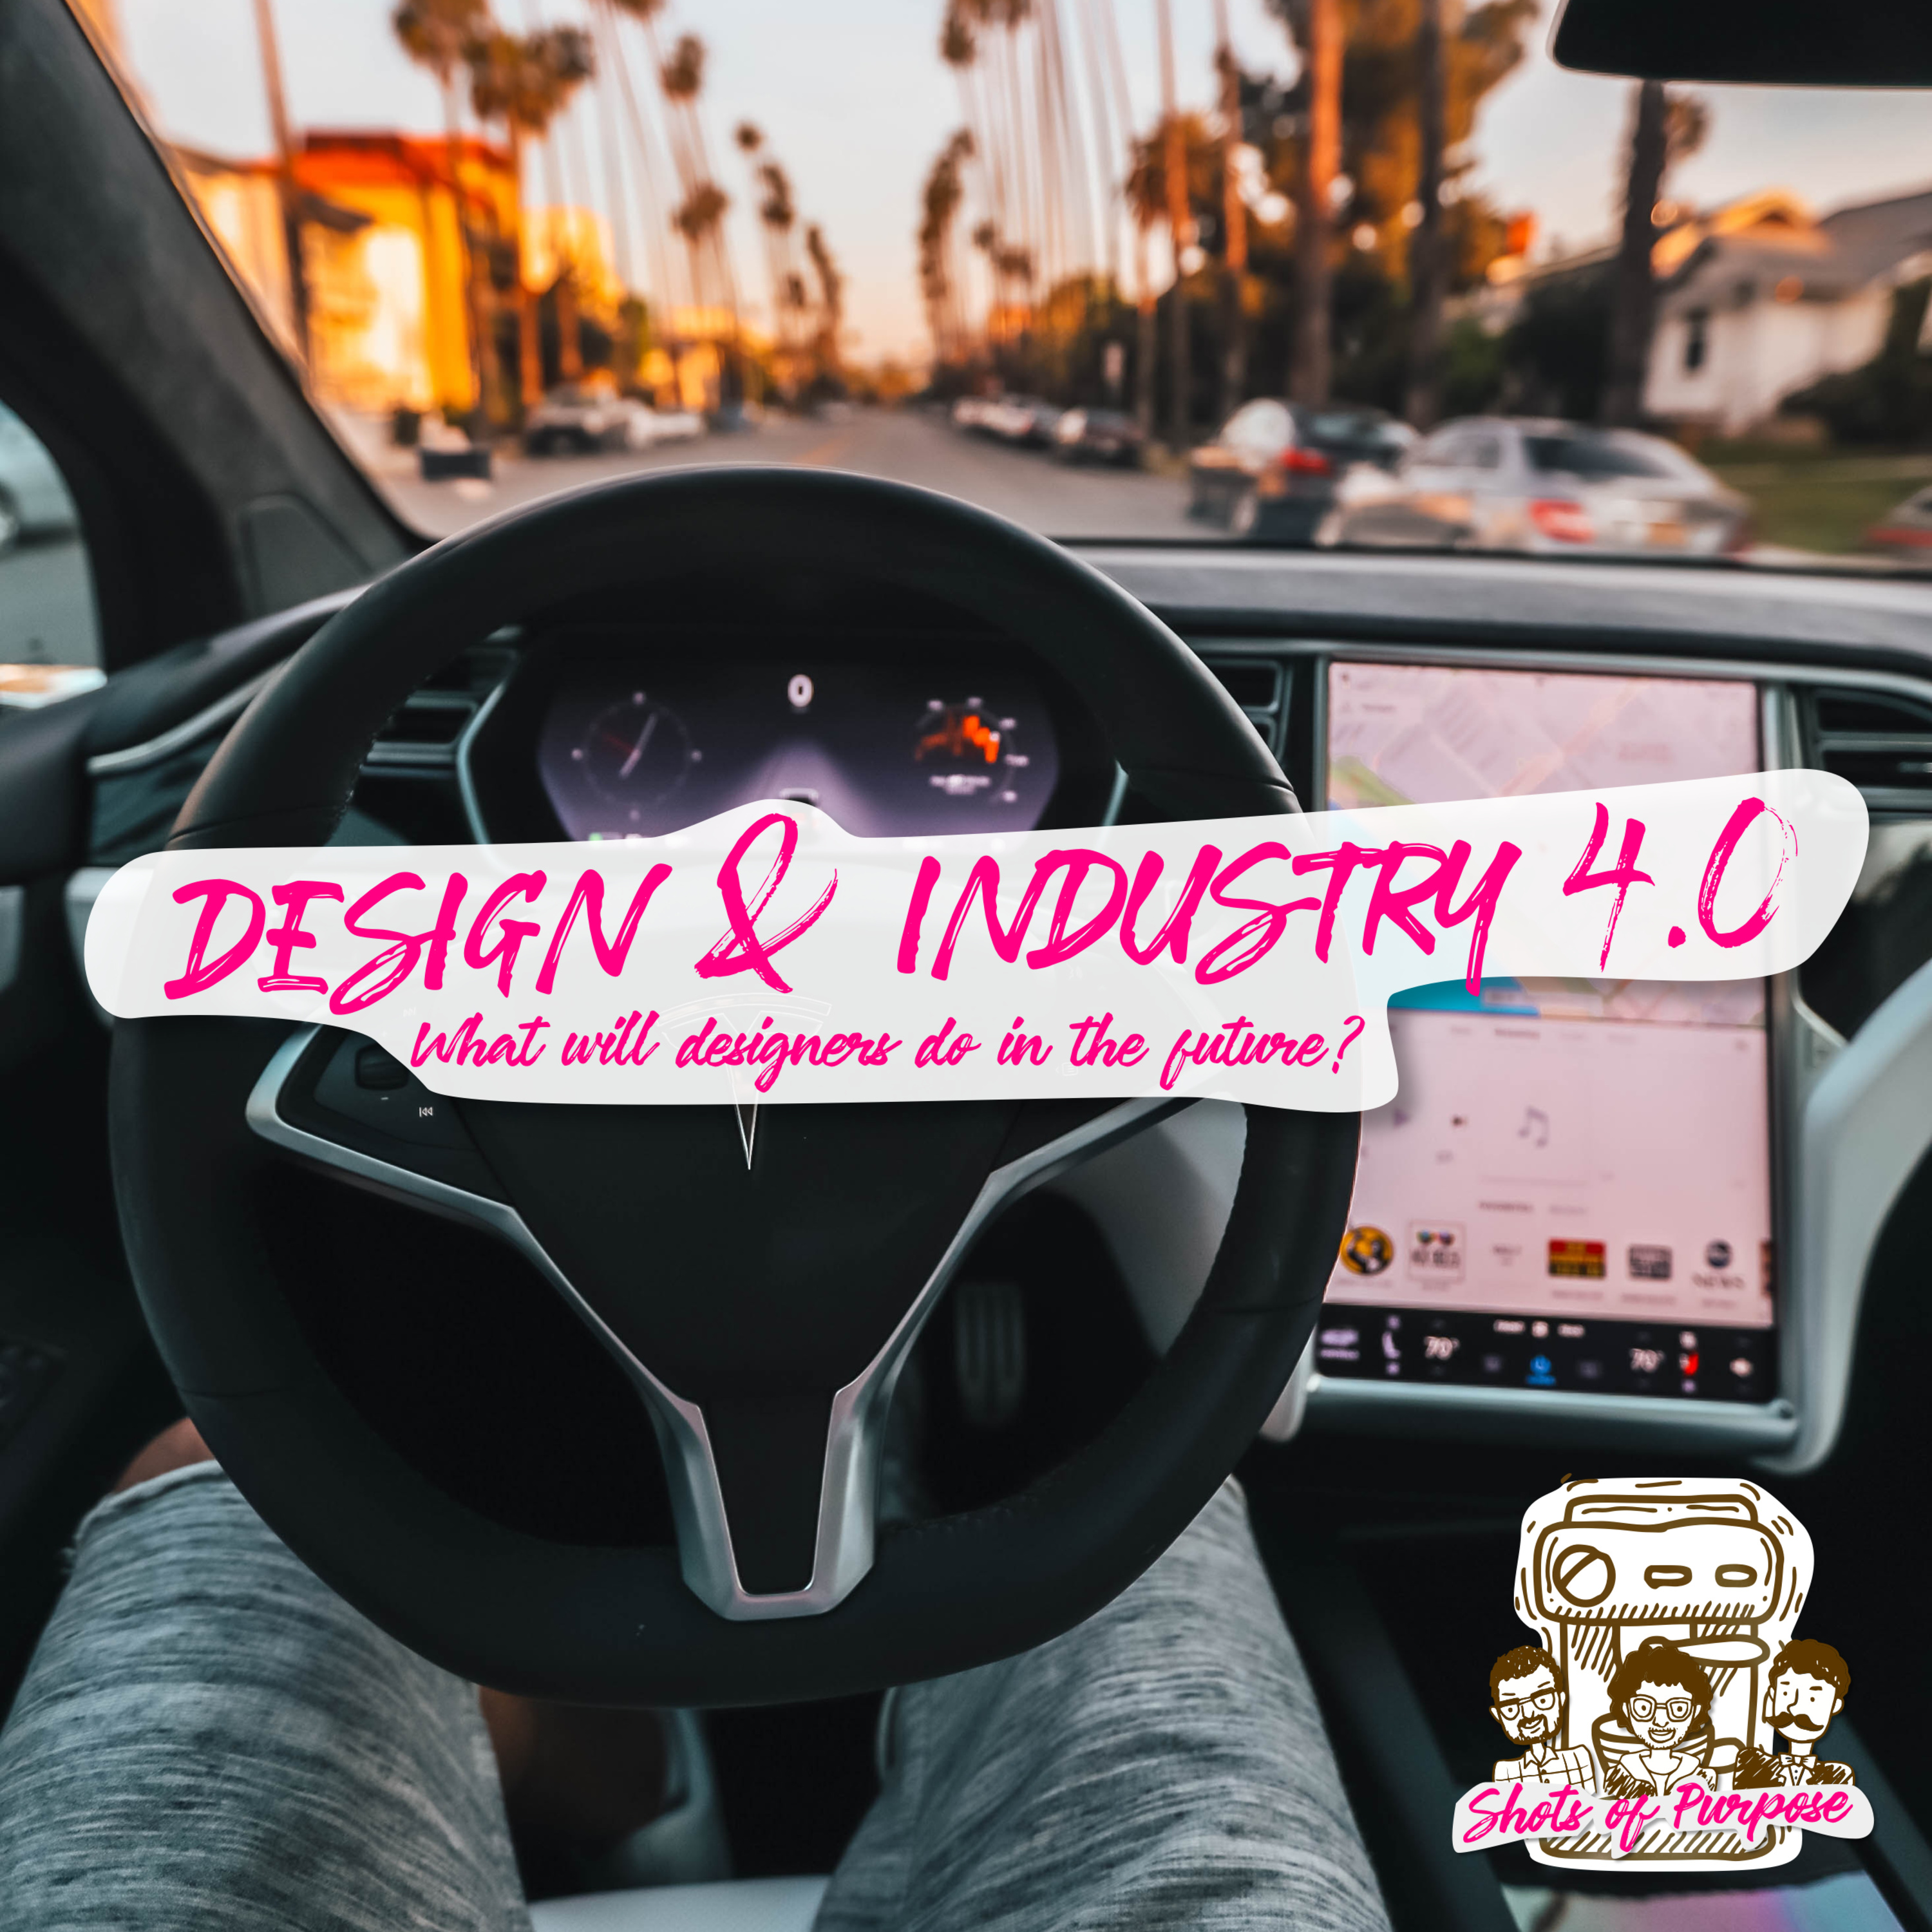 Design for Industry 4.0, what will designers do in the future?